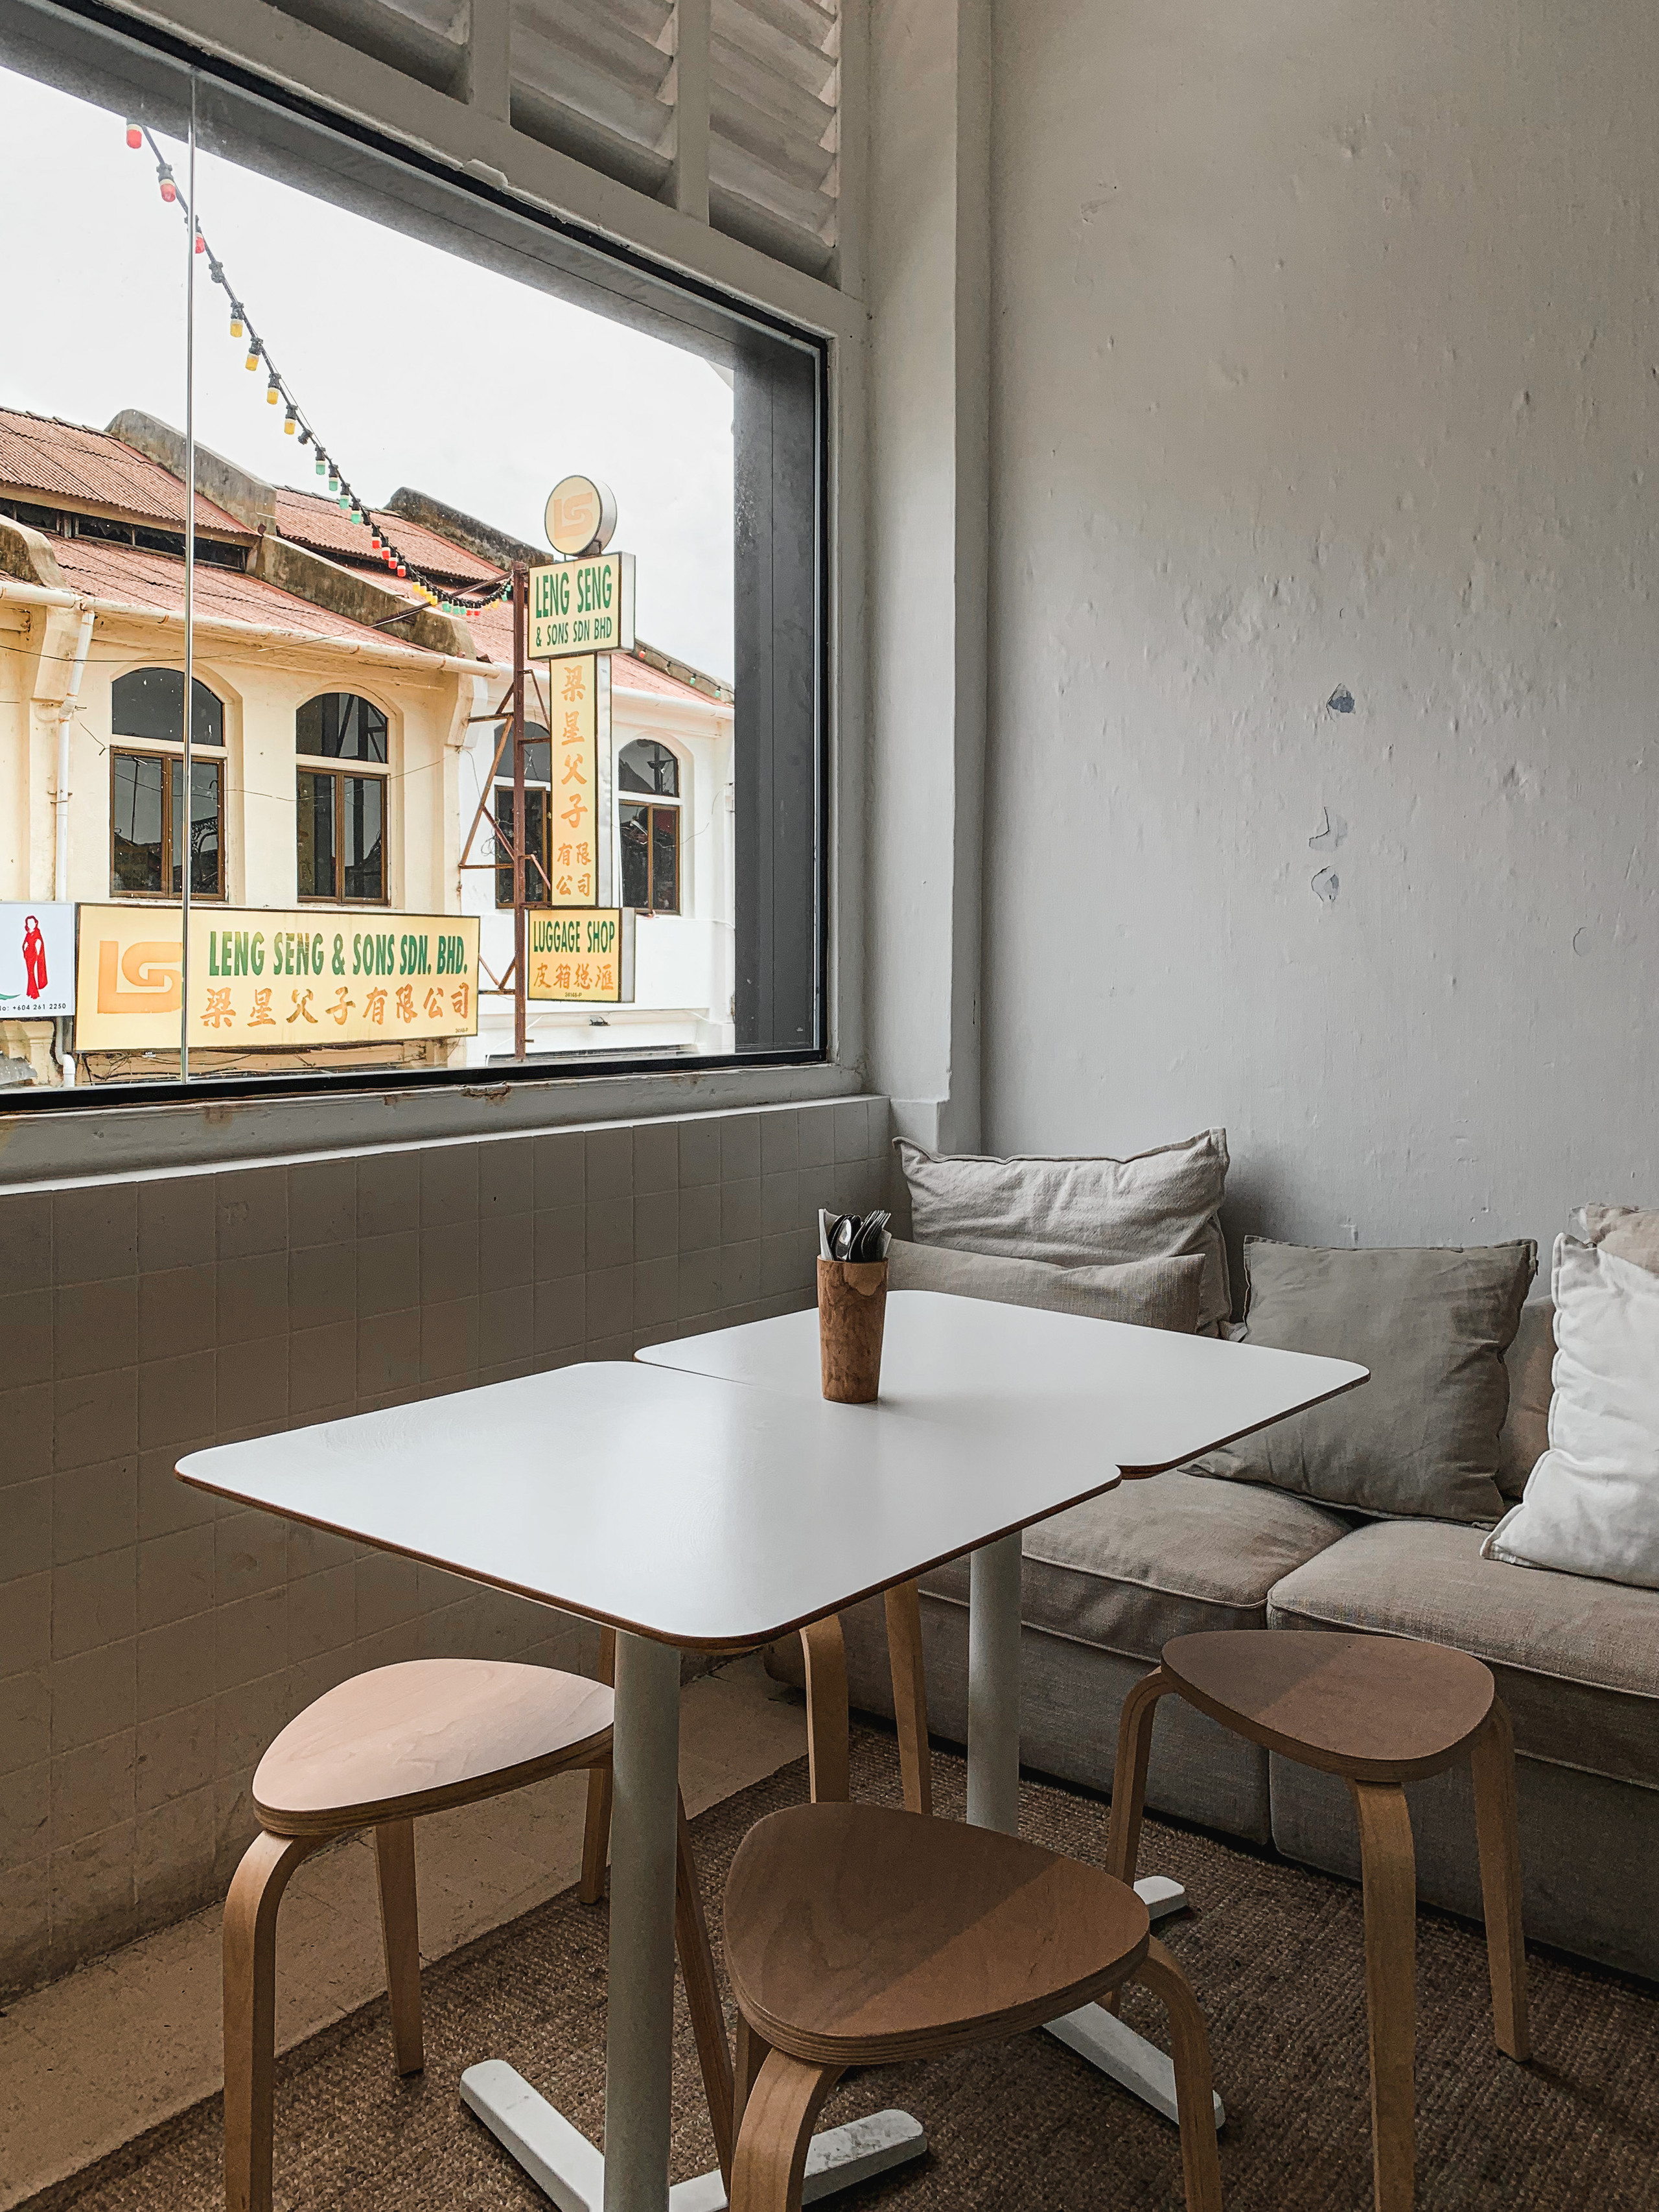 Island Problems ambience: cosy, minimalistic Muji-style interiors and sofa | RollingBear Travels.